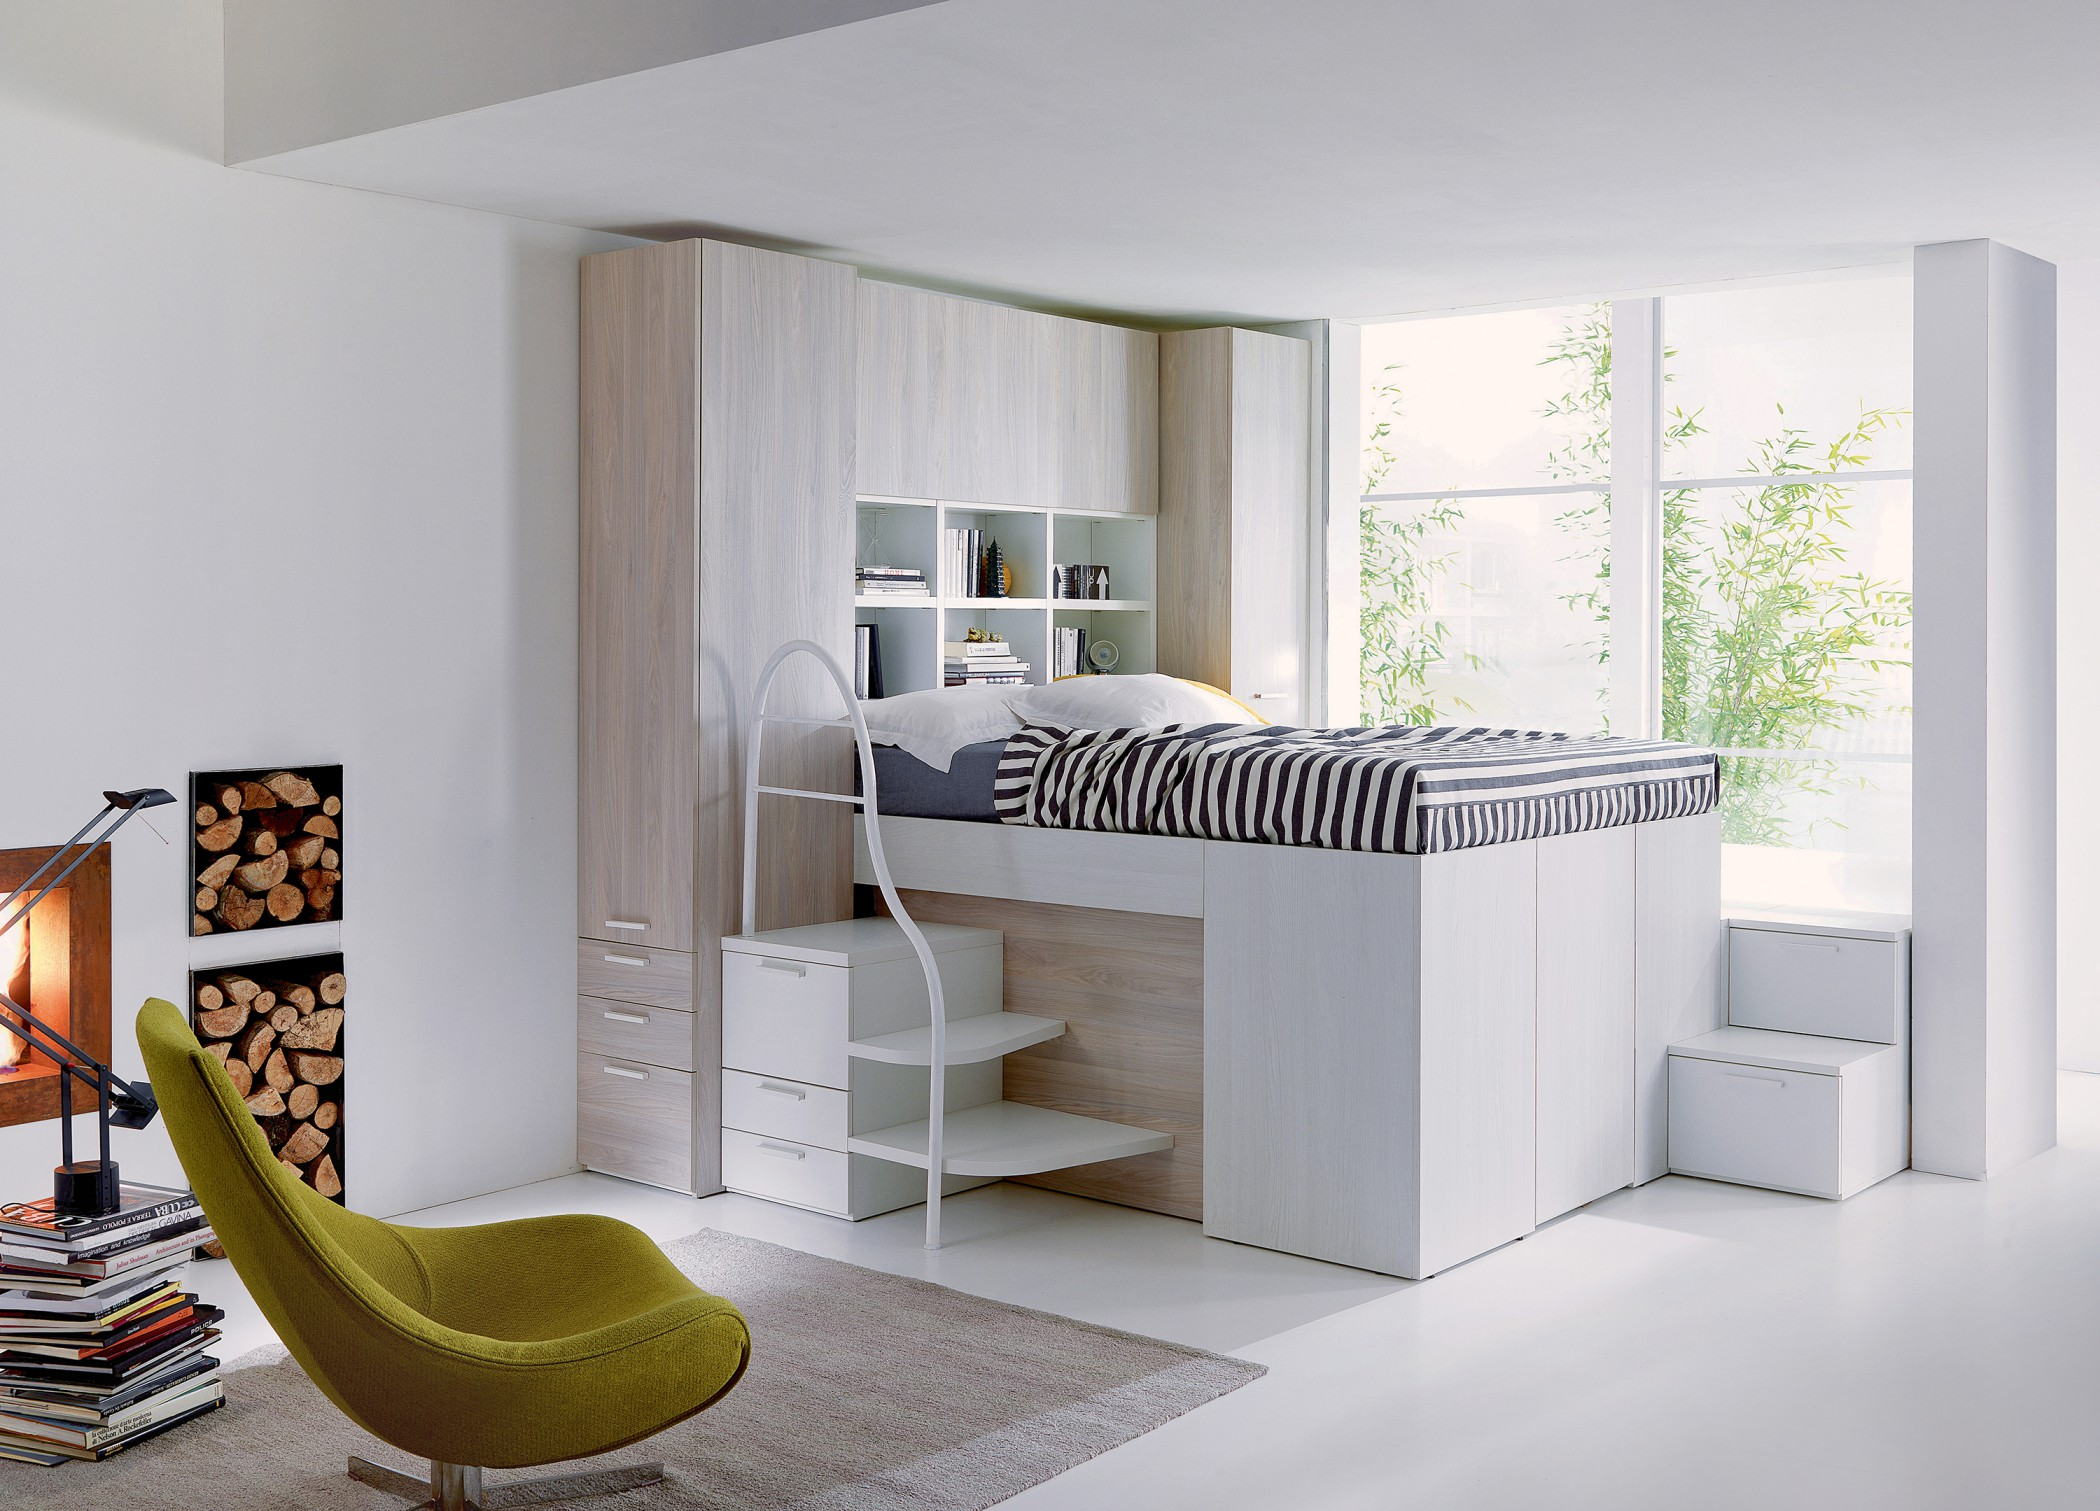 sewing beds yoga for custom the you cabinetry wall mind that trends a have imagine way wallbeds office out closet an solutions become bed room it into closets will one what two in do of studio with transforming